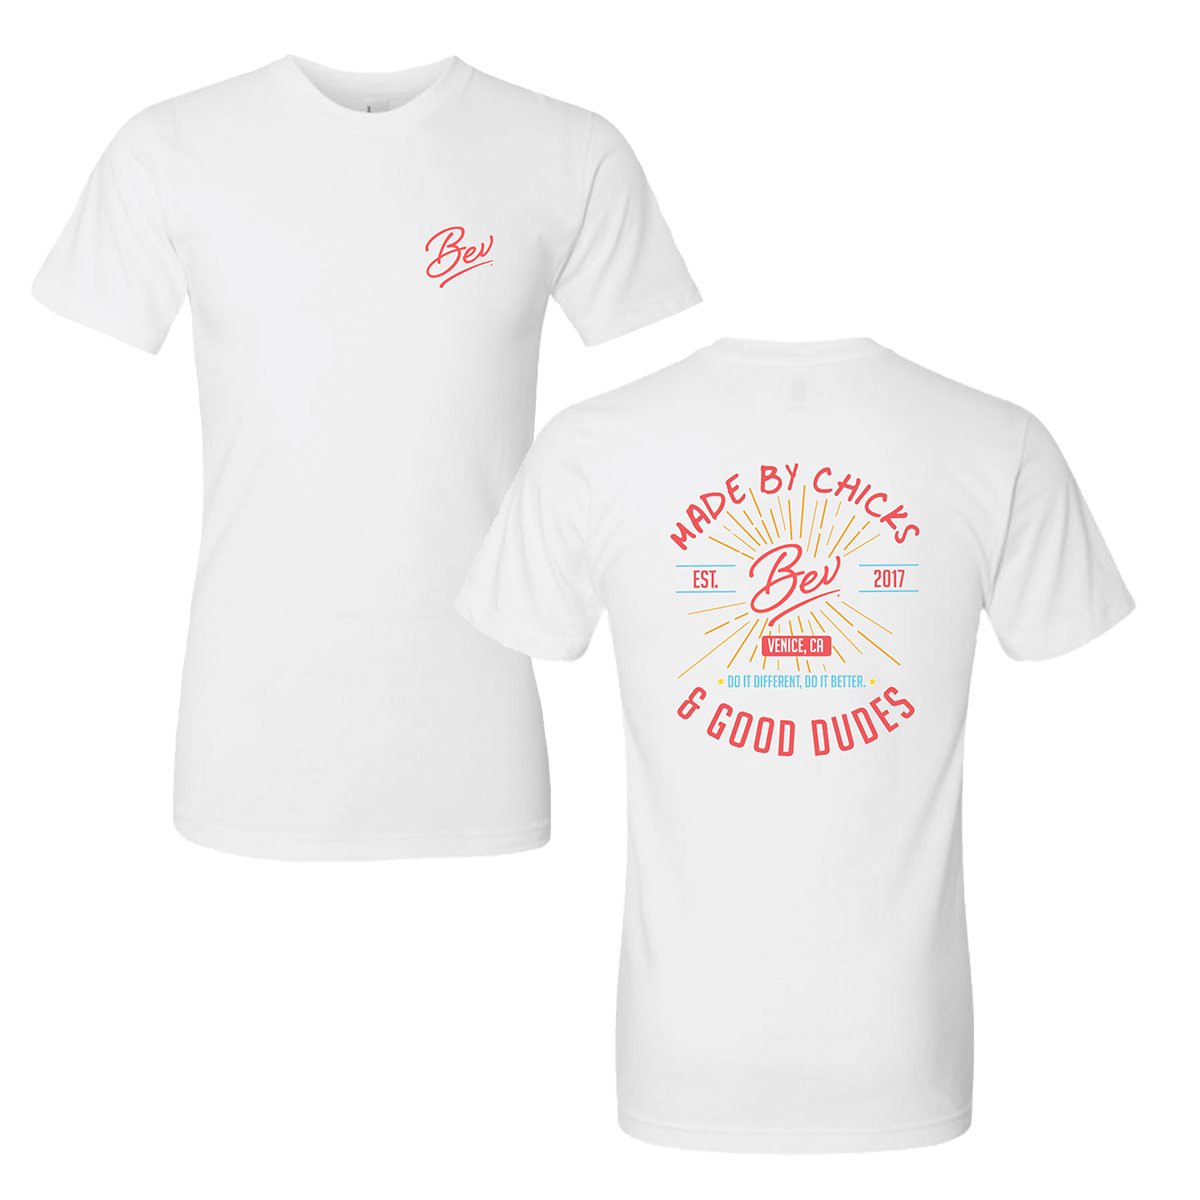 'Made by Chicks & Good Dudes' Tee - Bev